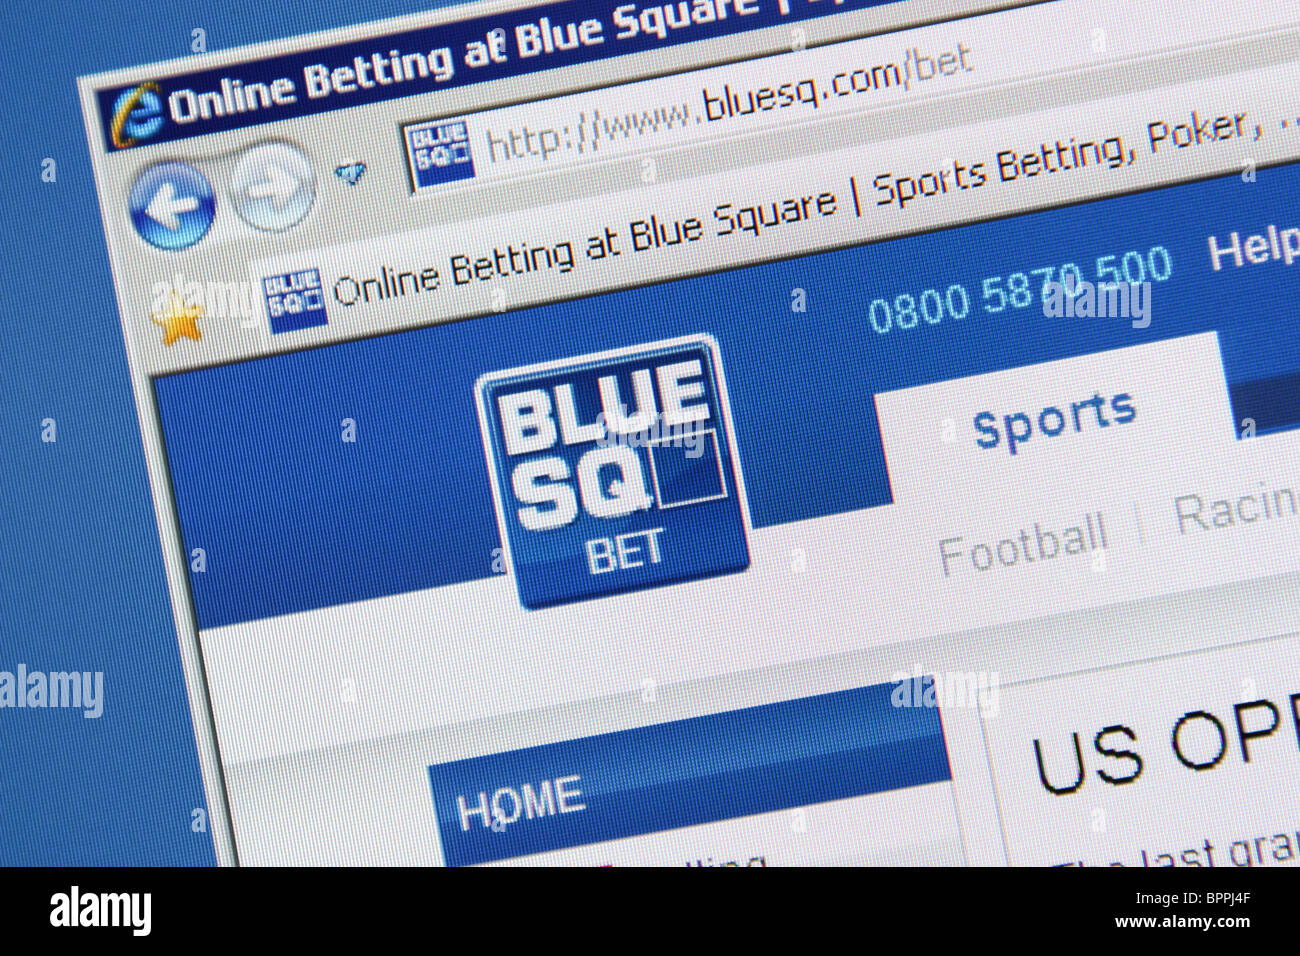 Bluesq betting online offshore betting site